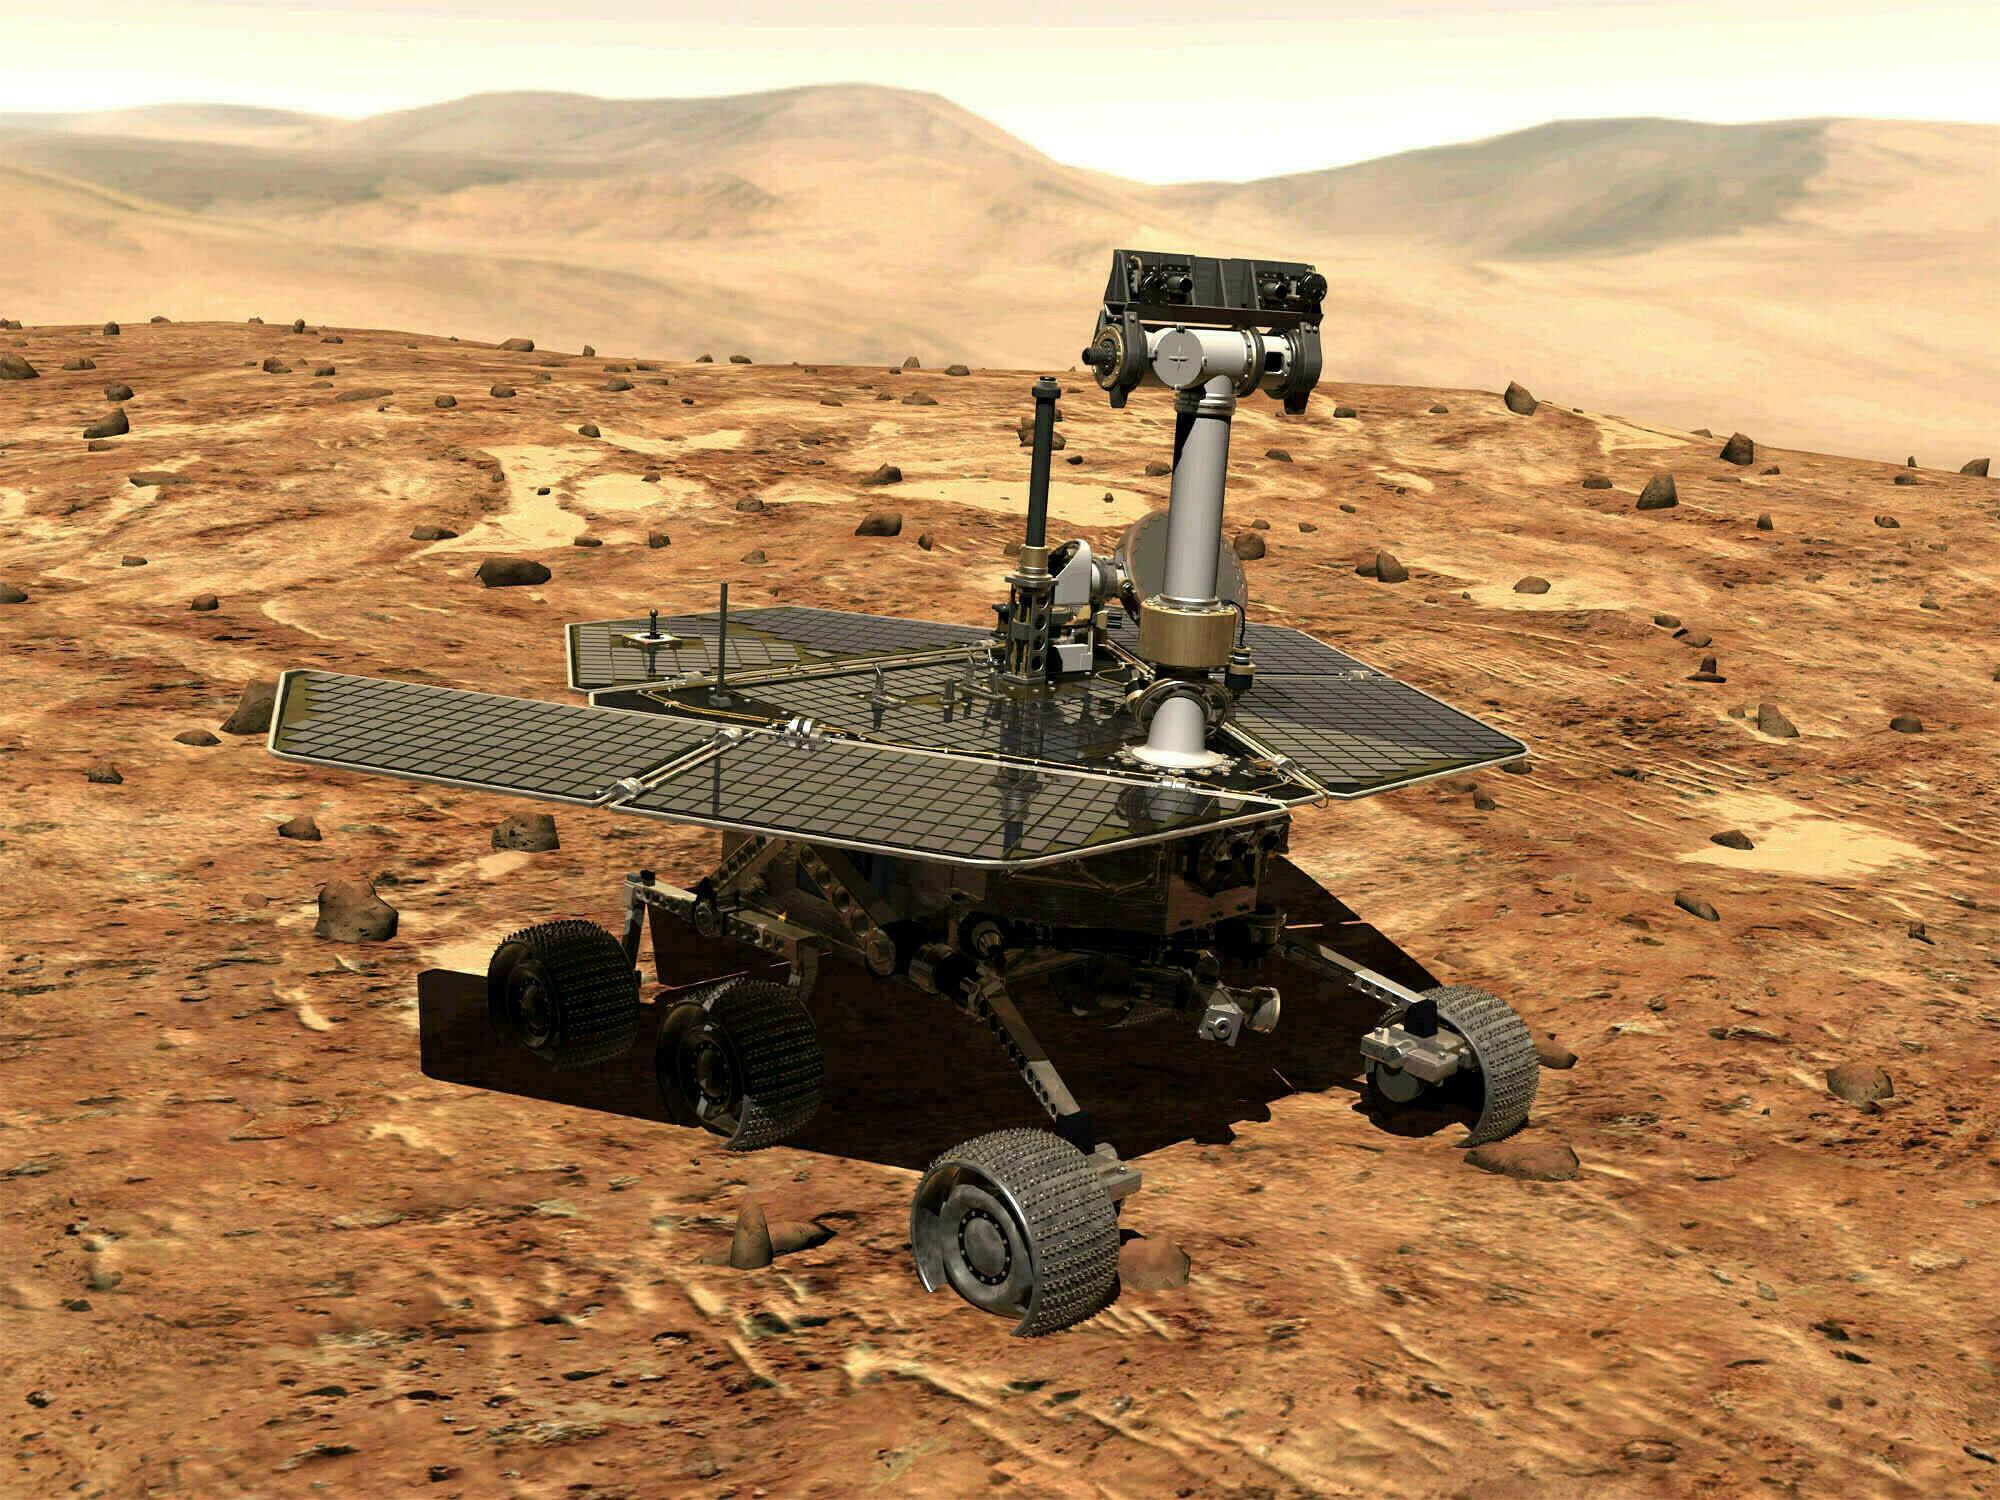 Nasa announcement to reveal the latest – and probably last – news on Mars Opportunity rover